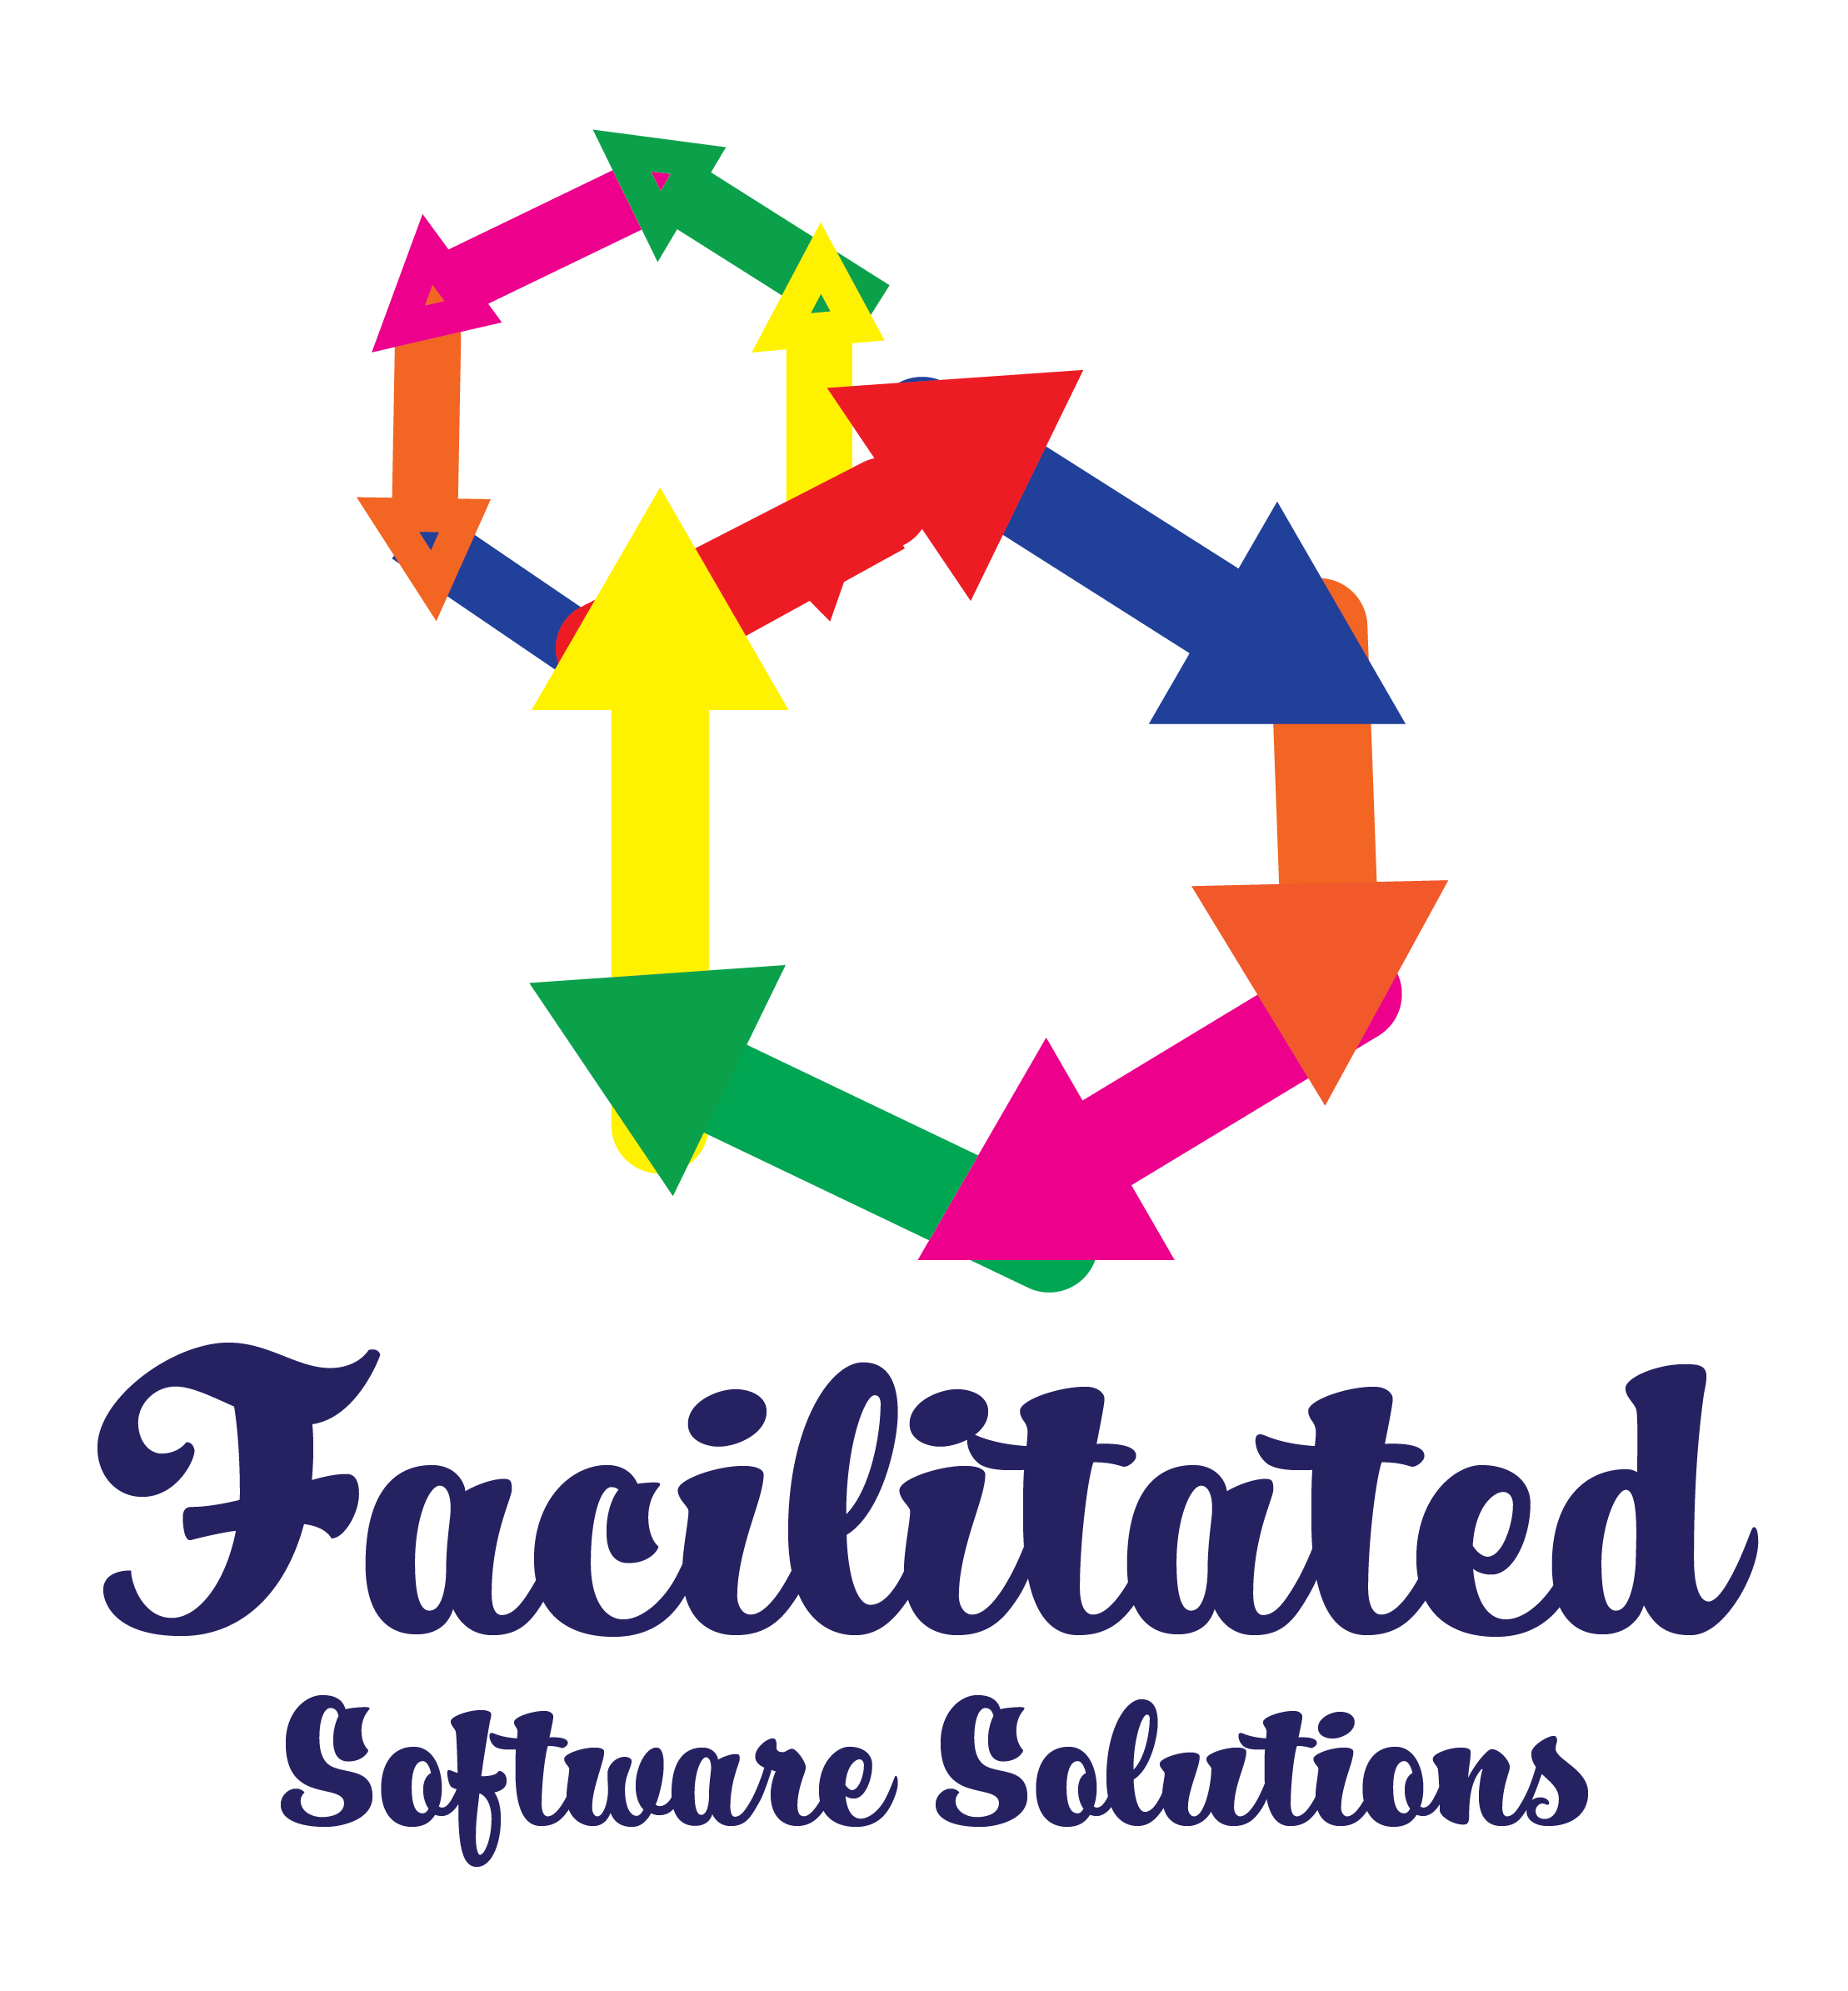 Facilitated Software Solutions, Inc.